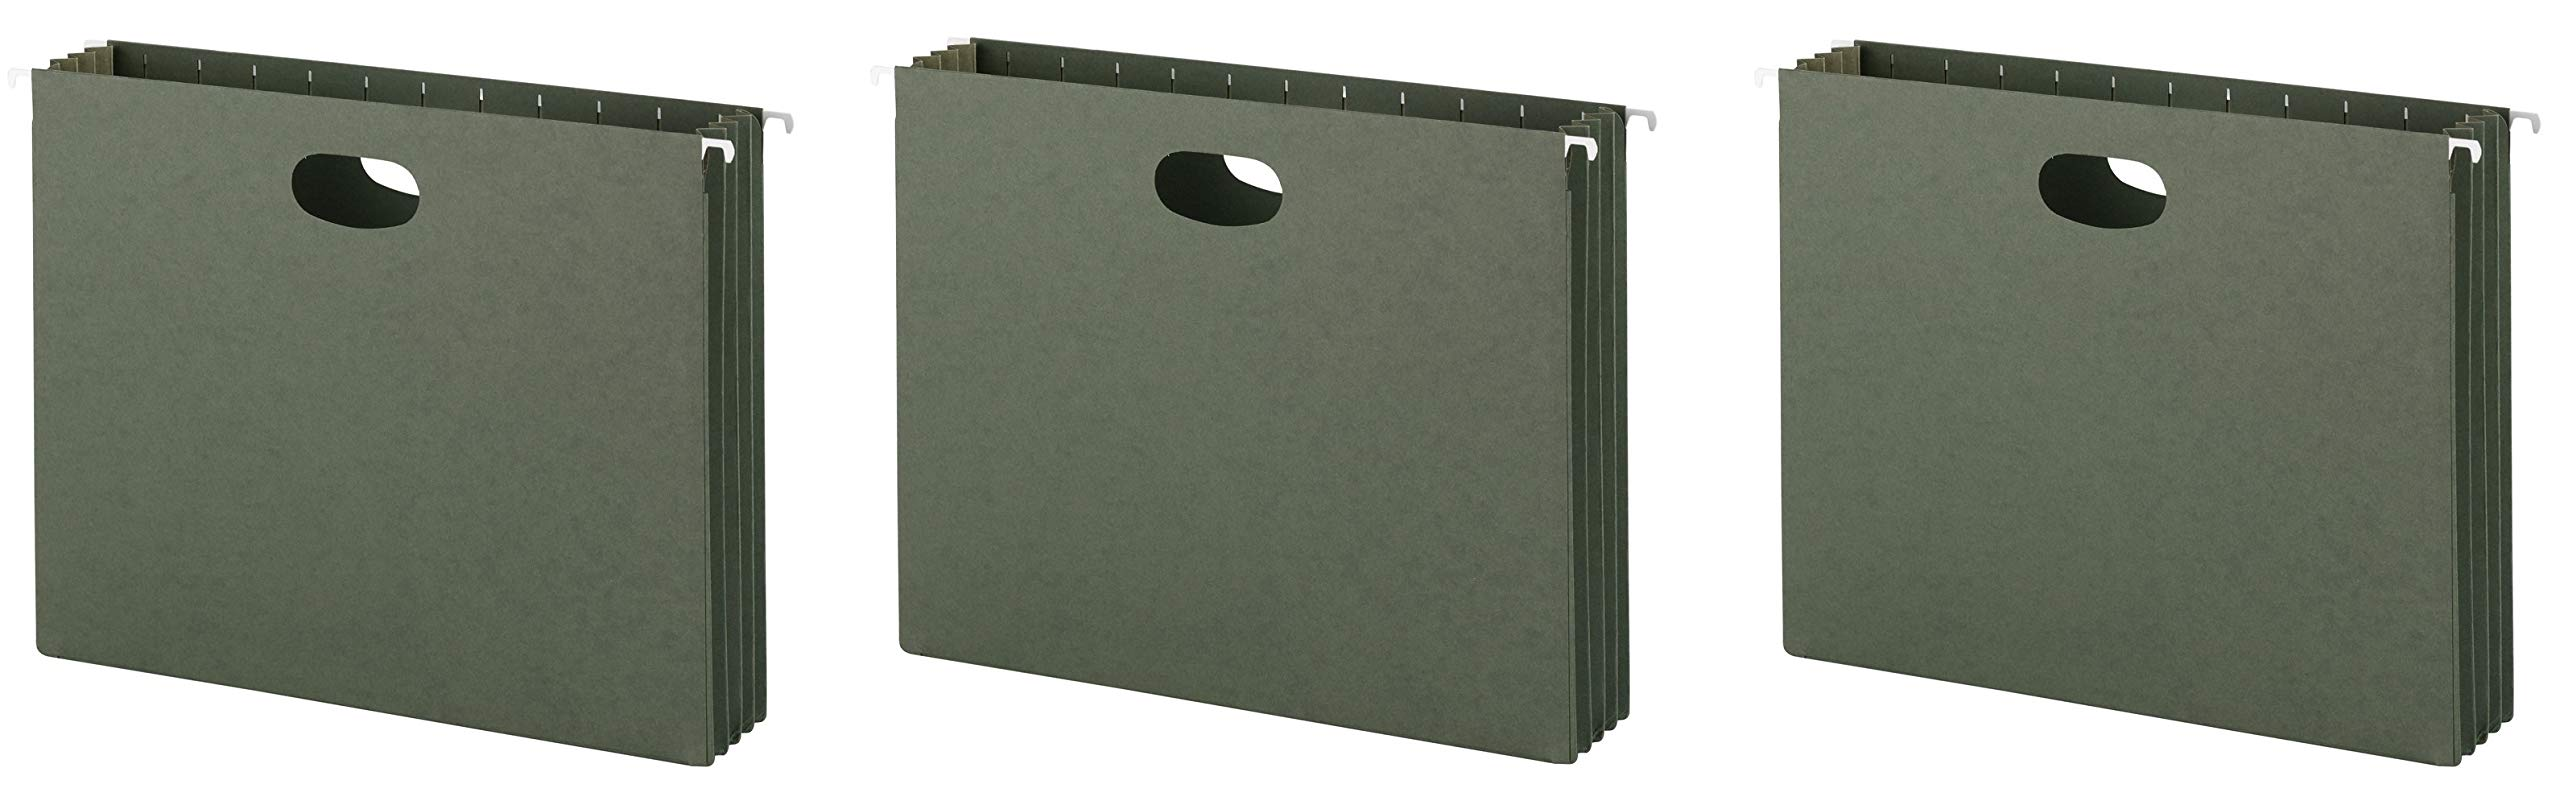 Smead Hanging File Pockets, 3-1/2 Inch Expansion, Letter Size, Standard Green, 10 Per Box (64220) (3 X 10 Per Box)